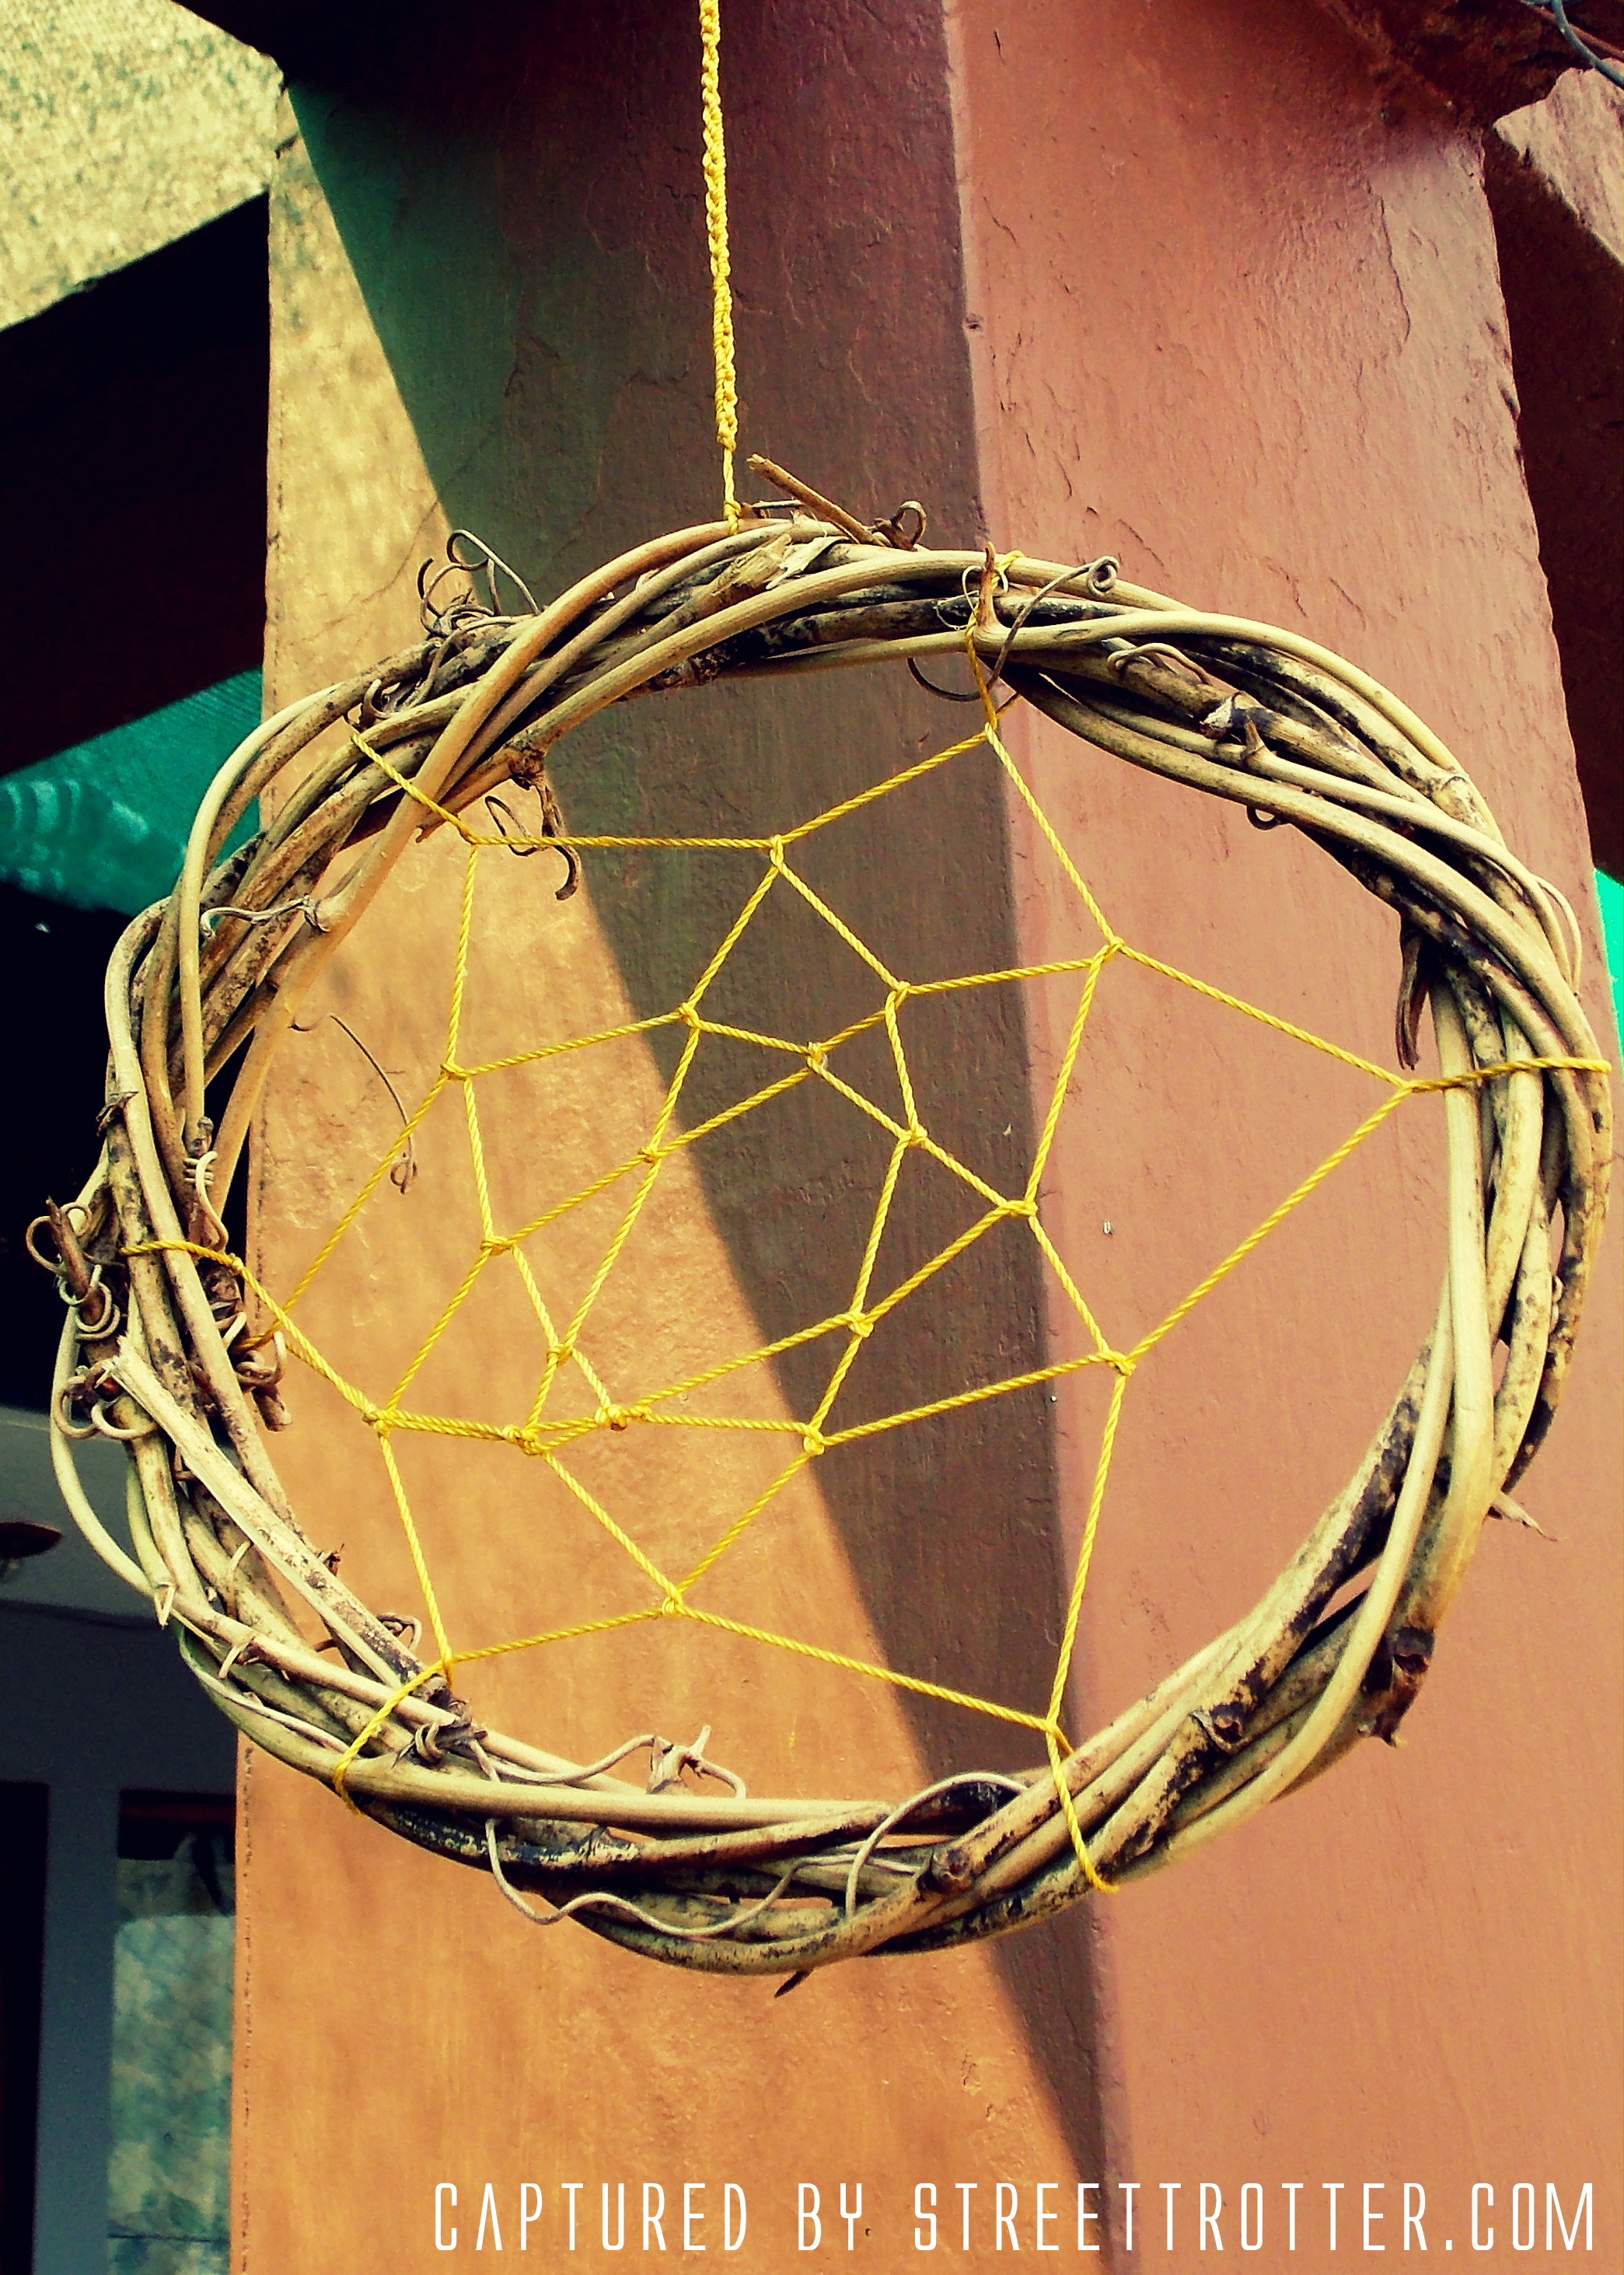 The oldest tribal dream catcher, made with bending branches of trees...